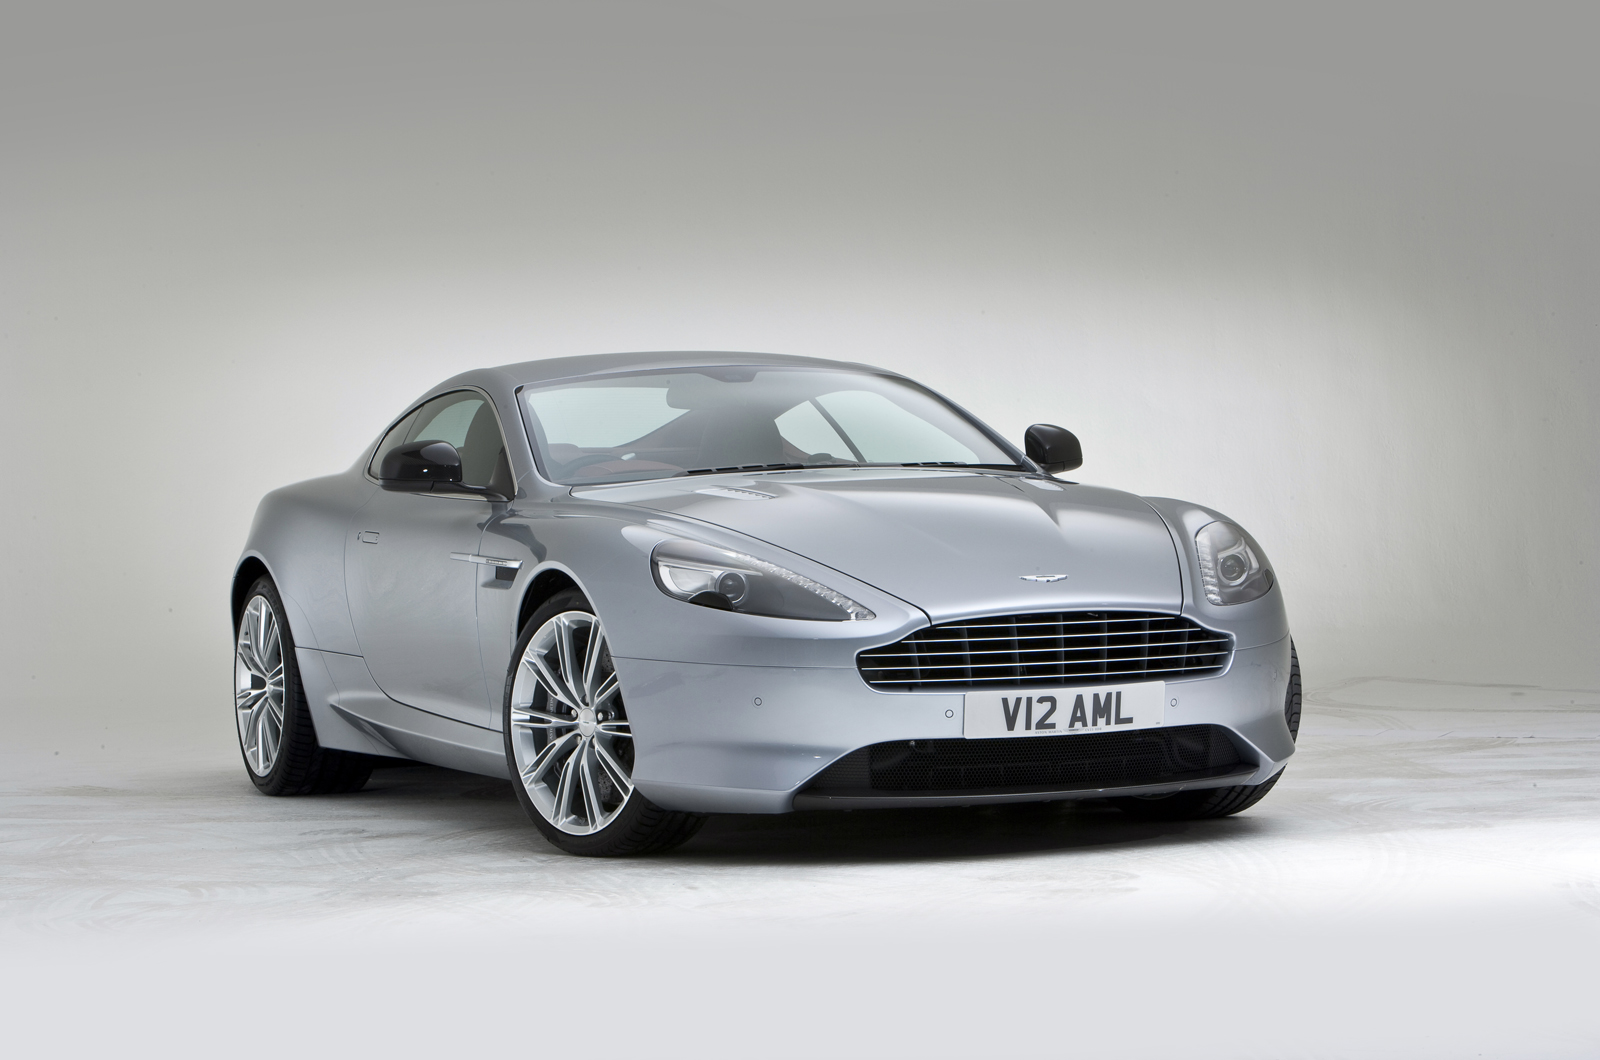 Aston Martin DB9 Facelifting Wallpaper For Computer Wallpaper